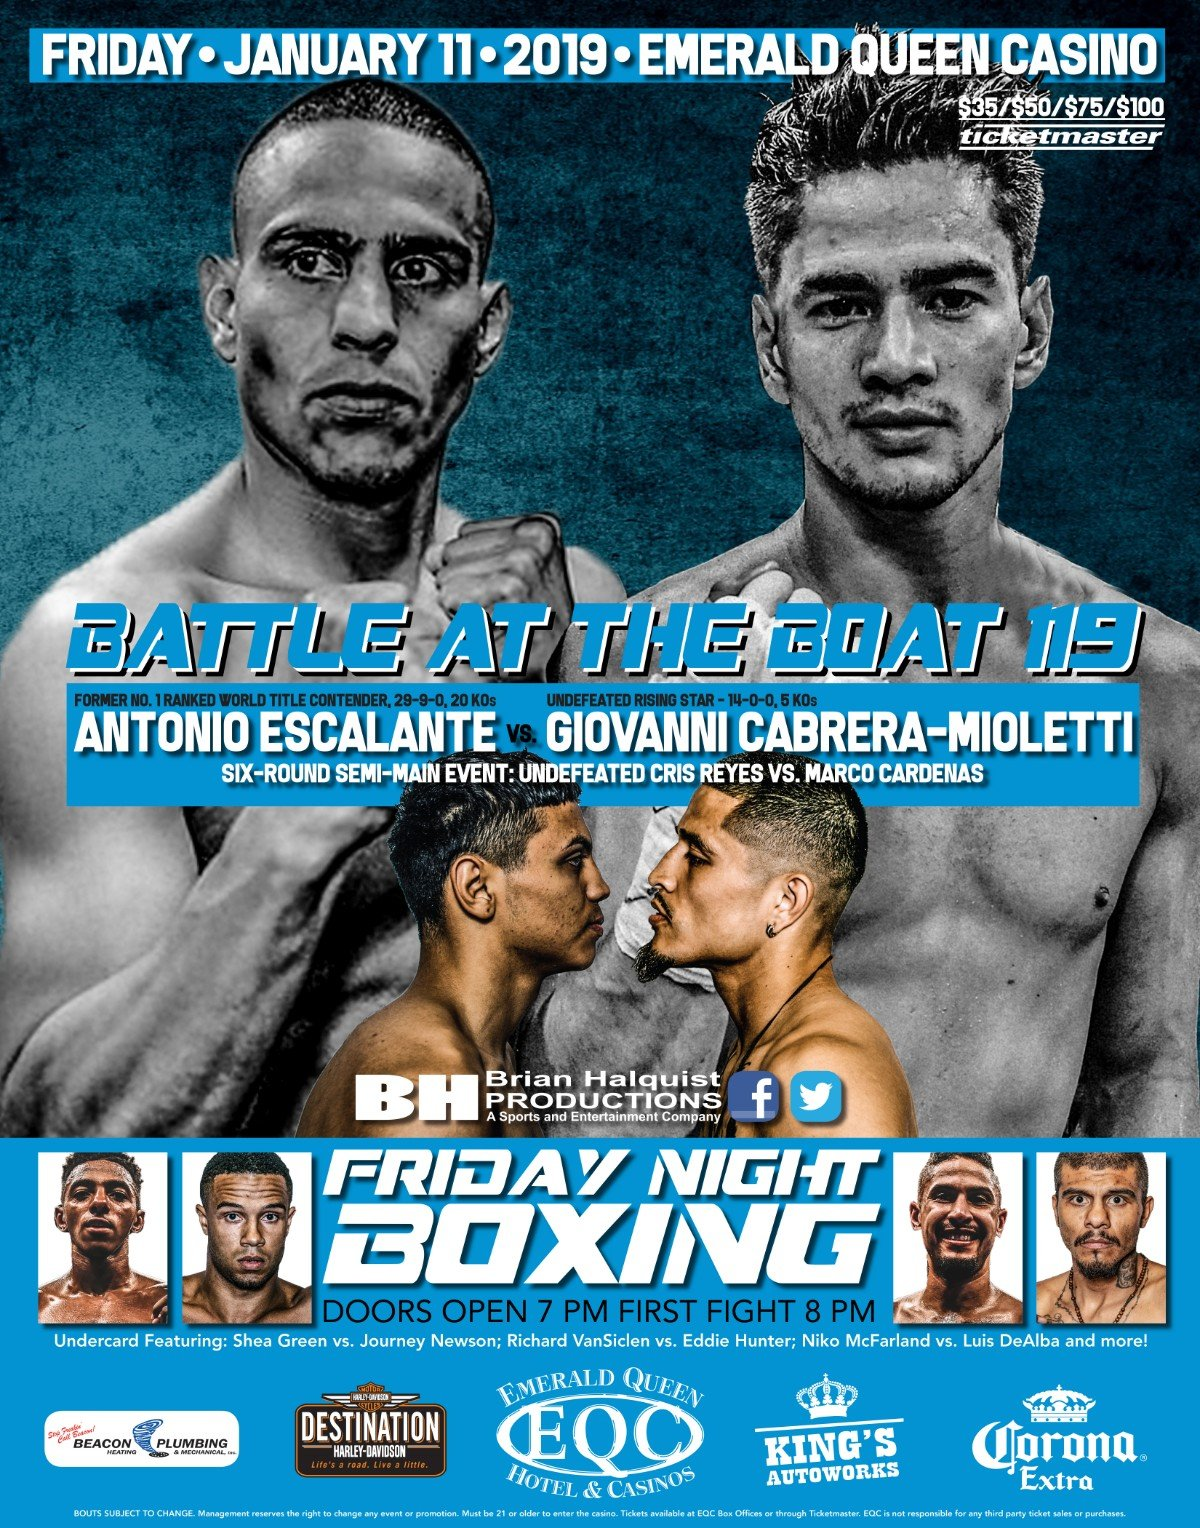 Antonio Escalante, Giovanni Cabrera Mioletti - Brian Halquist Productions will kick off its 2019 Battle at the Boat boxing schedule with a special Friday night event on Friday, Jan. 11 at the Emerald Queen Casino in Tacoma, Wash.